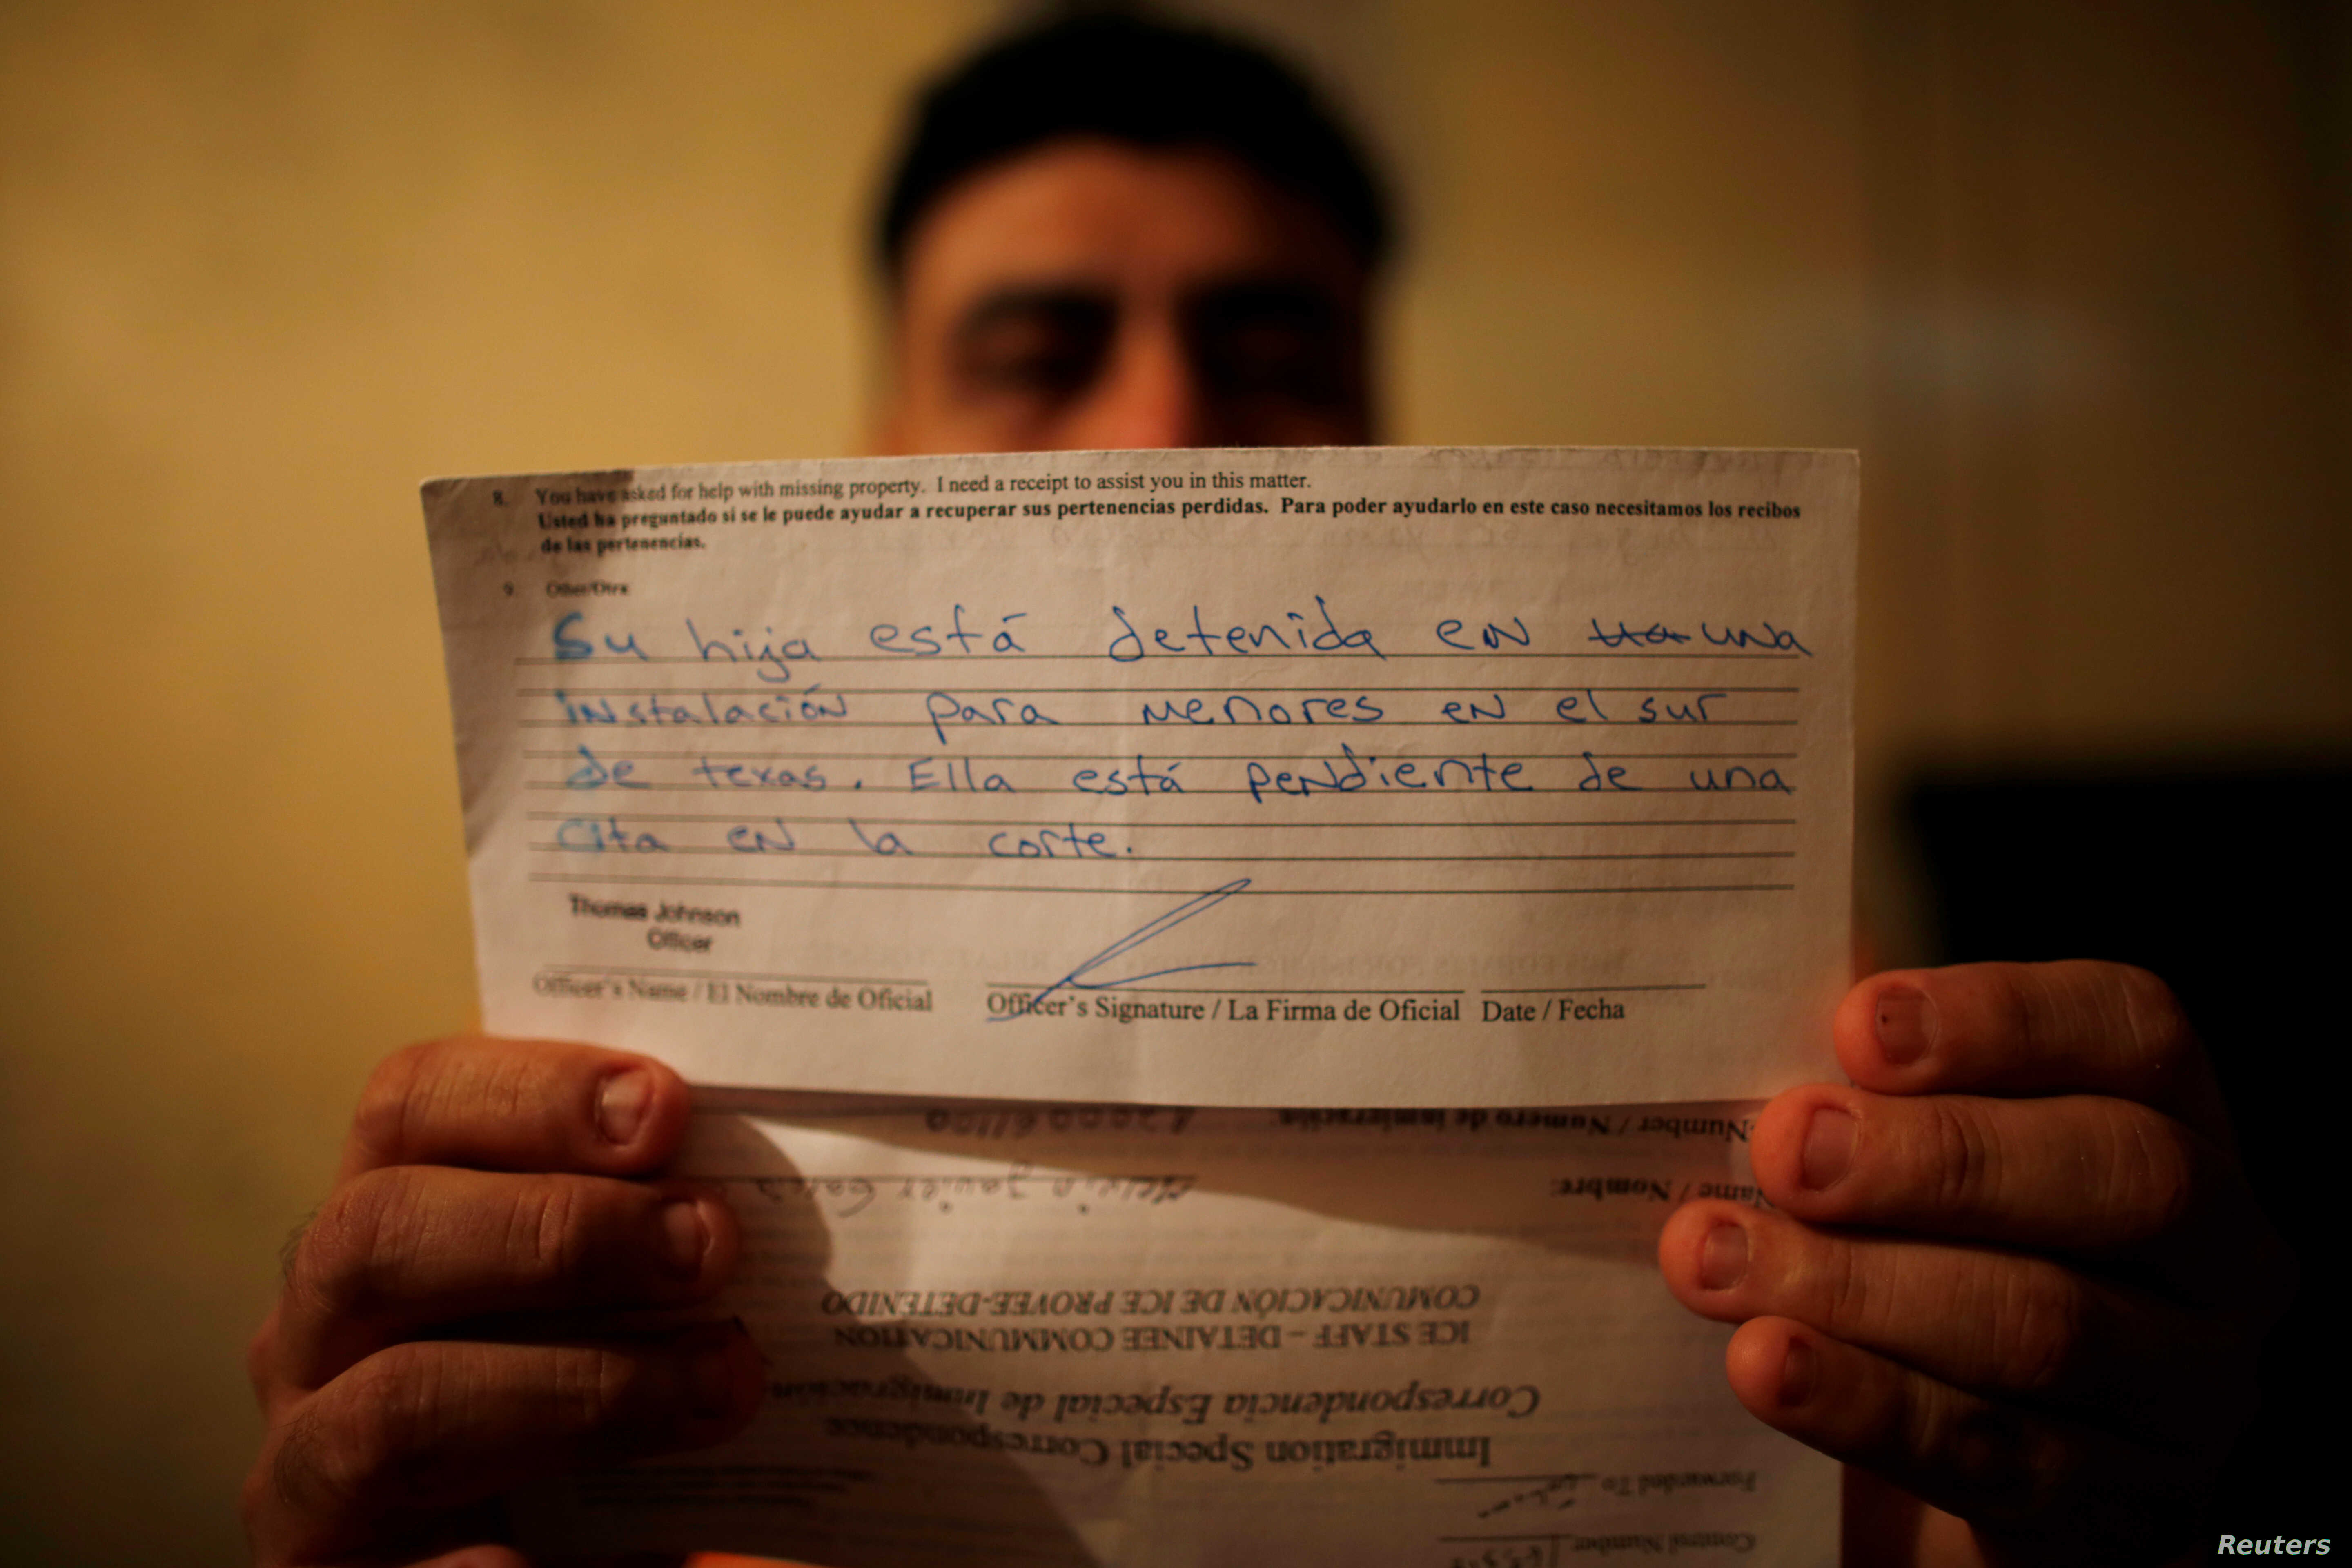 Melvin Garcia, 37, a deportee from the U.S. who was separated from his daughter Daylin Garcia, 12, at the McAllen entry point under the Trump administration's hardline immigration policy, shows a letter sent by U.S. Immigration and Customs Enforcemen...